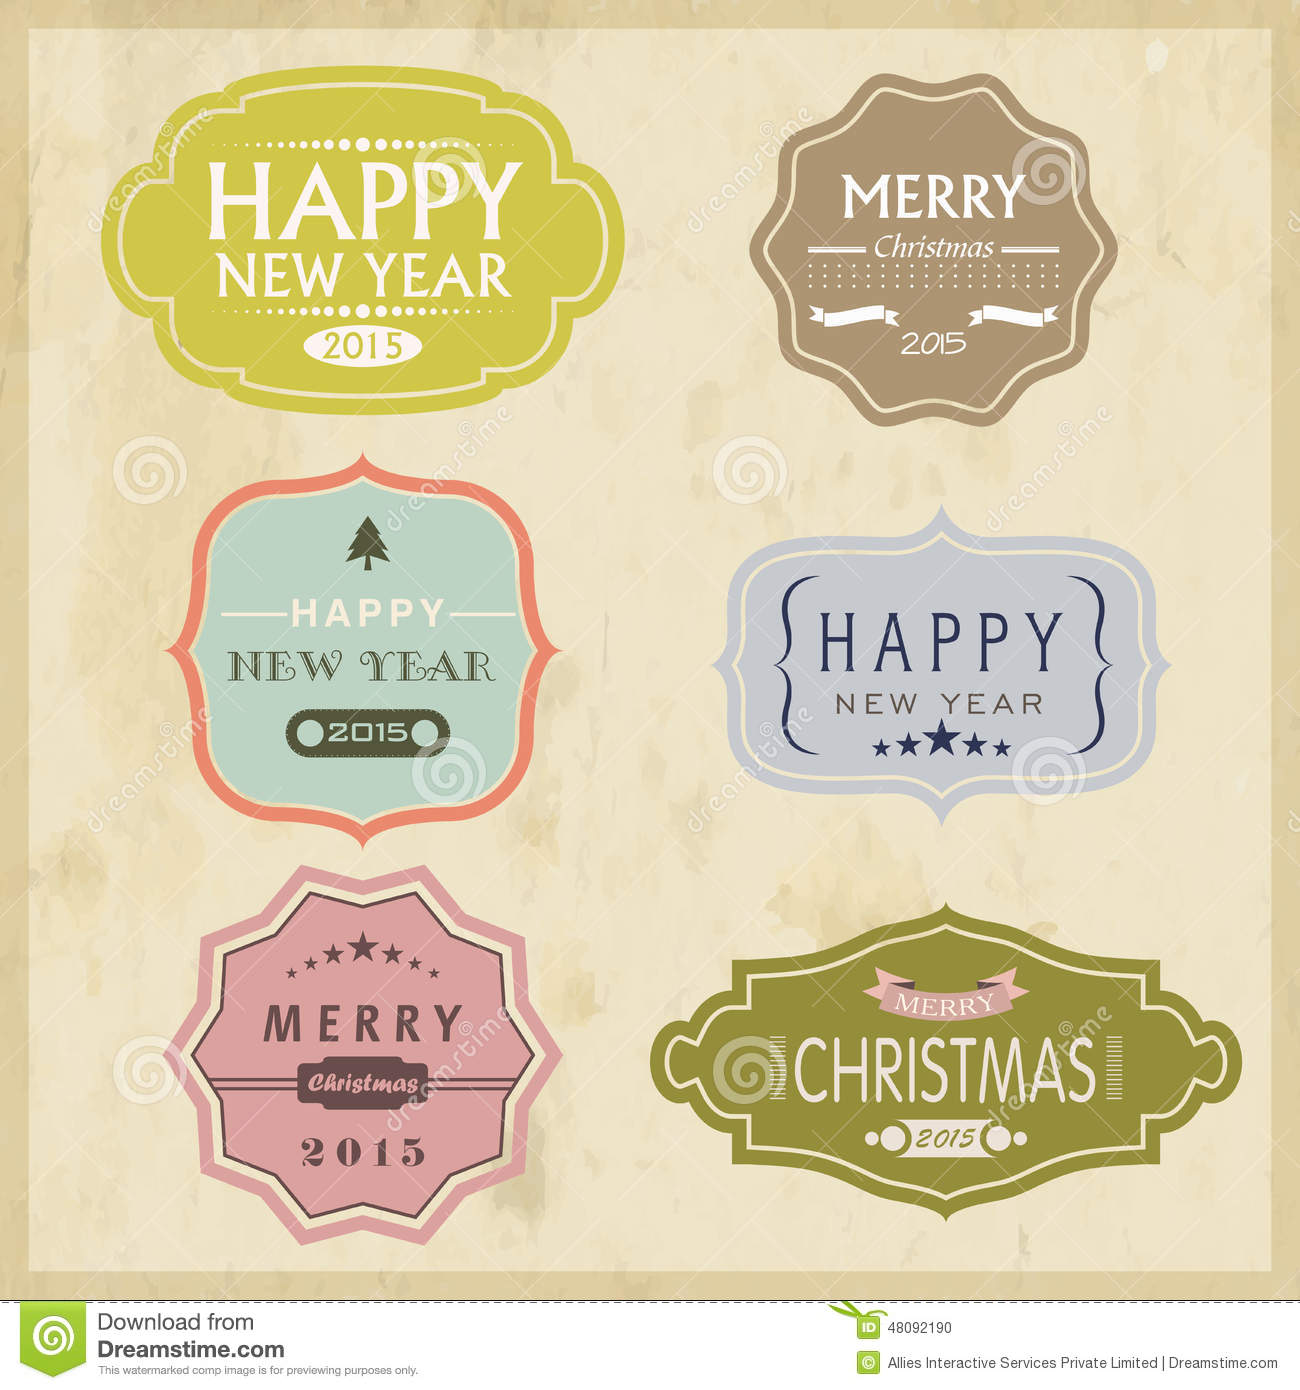 christmas and new year 2015 celebration vintage label or sticker